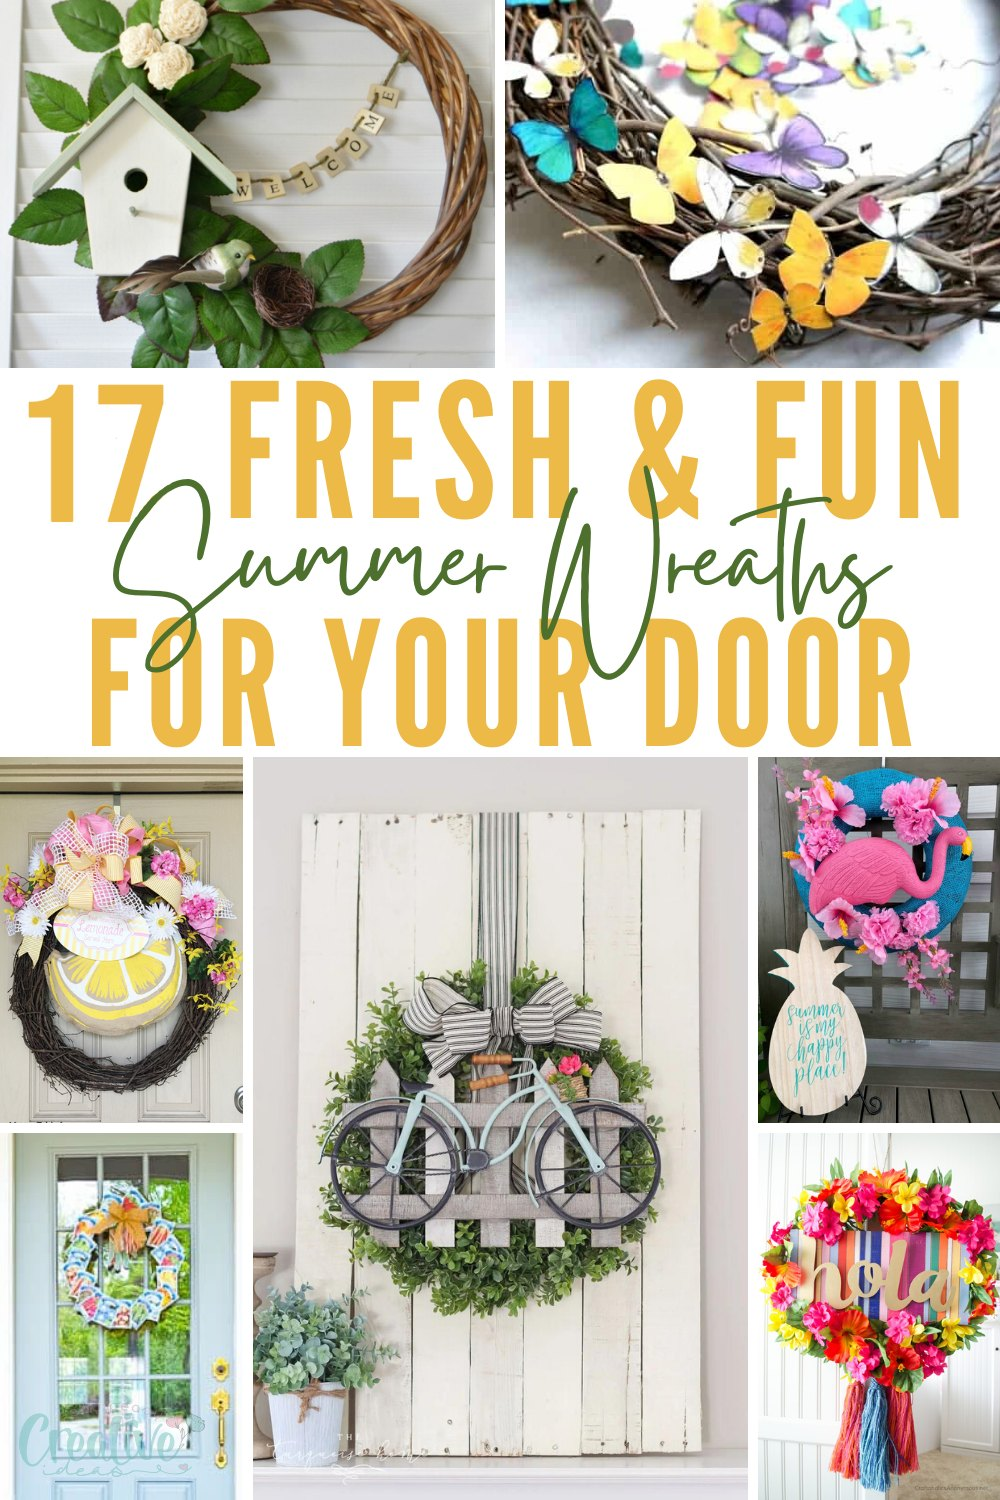 Celebrate the season with these unique summer wreath ideas for your front door! If you're looking for fun DIYwreaths for summer, you have come to the right place! via @petroneagu